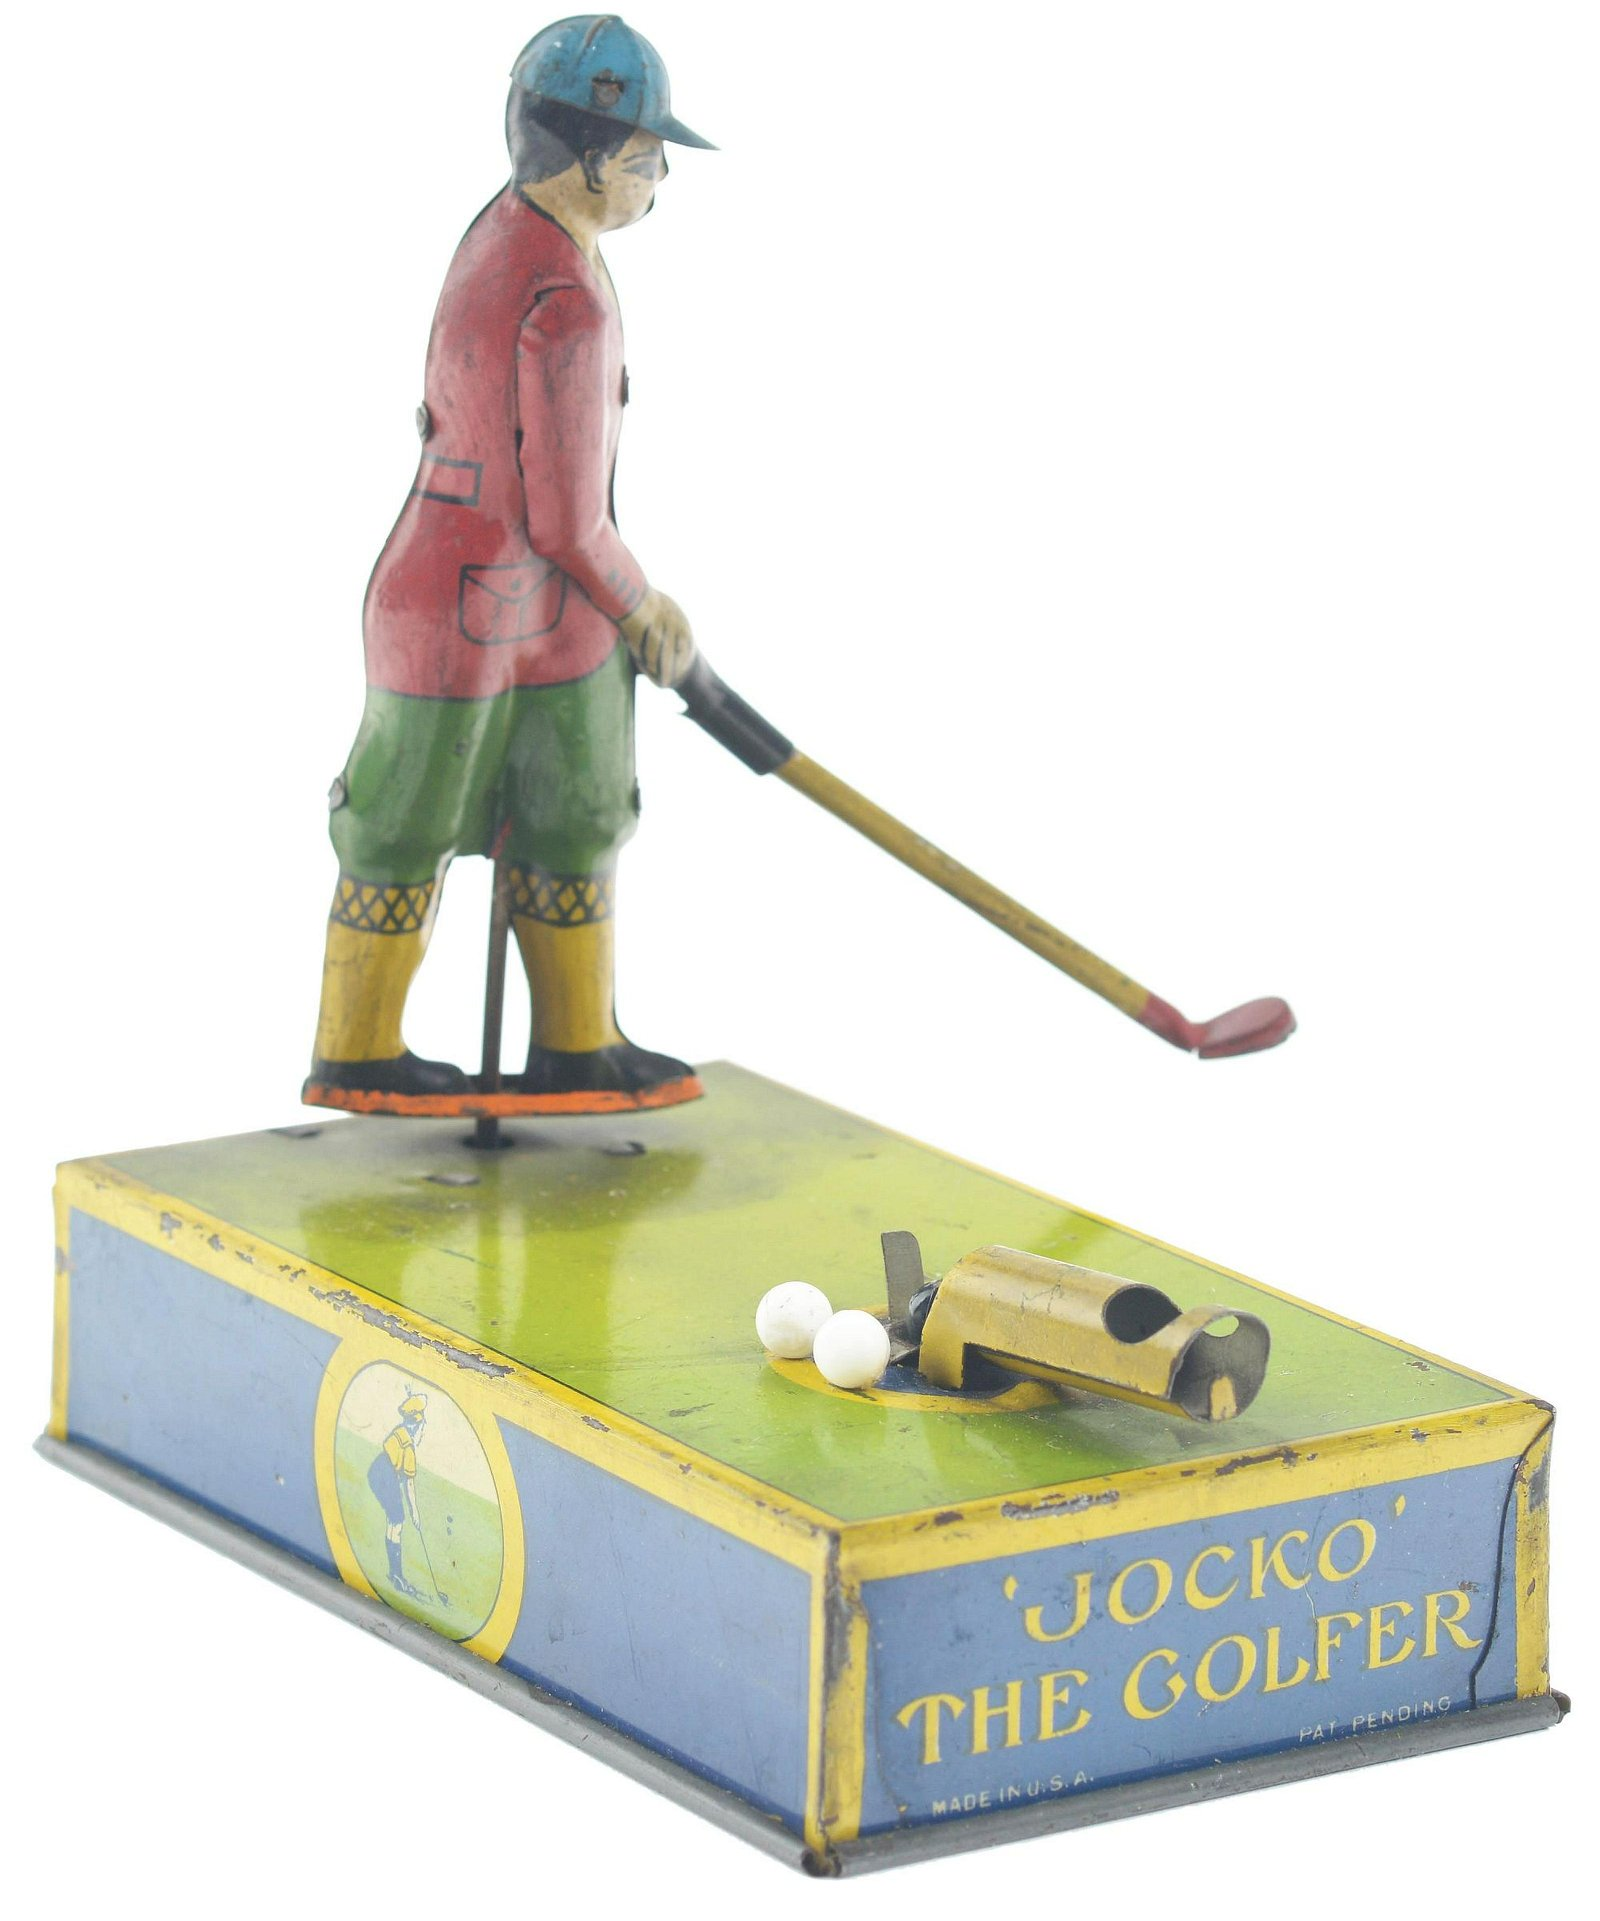 American Tin-Litho Jocko the Golfer Toy.